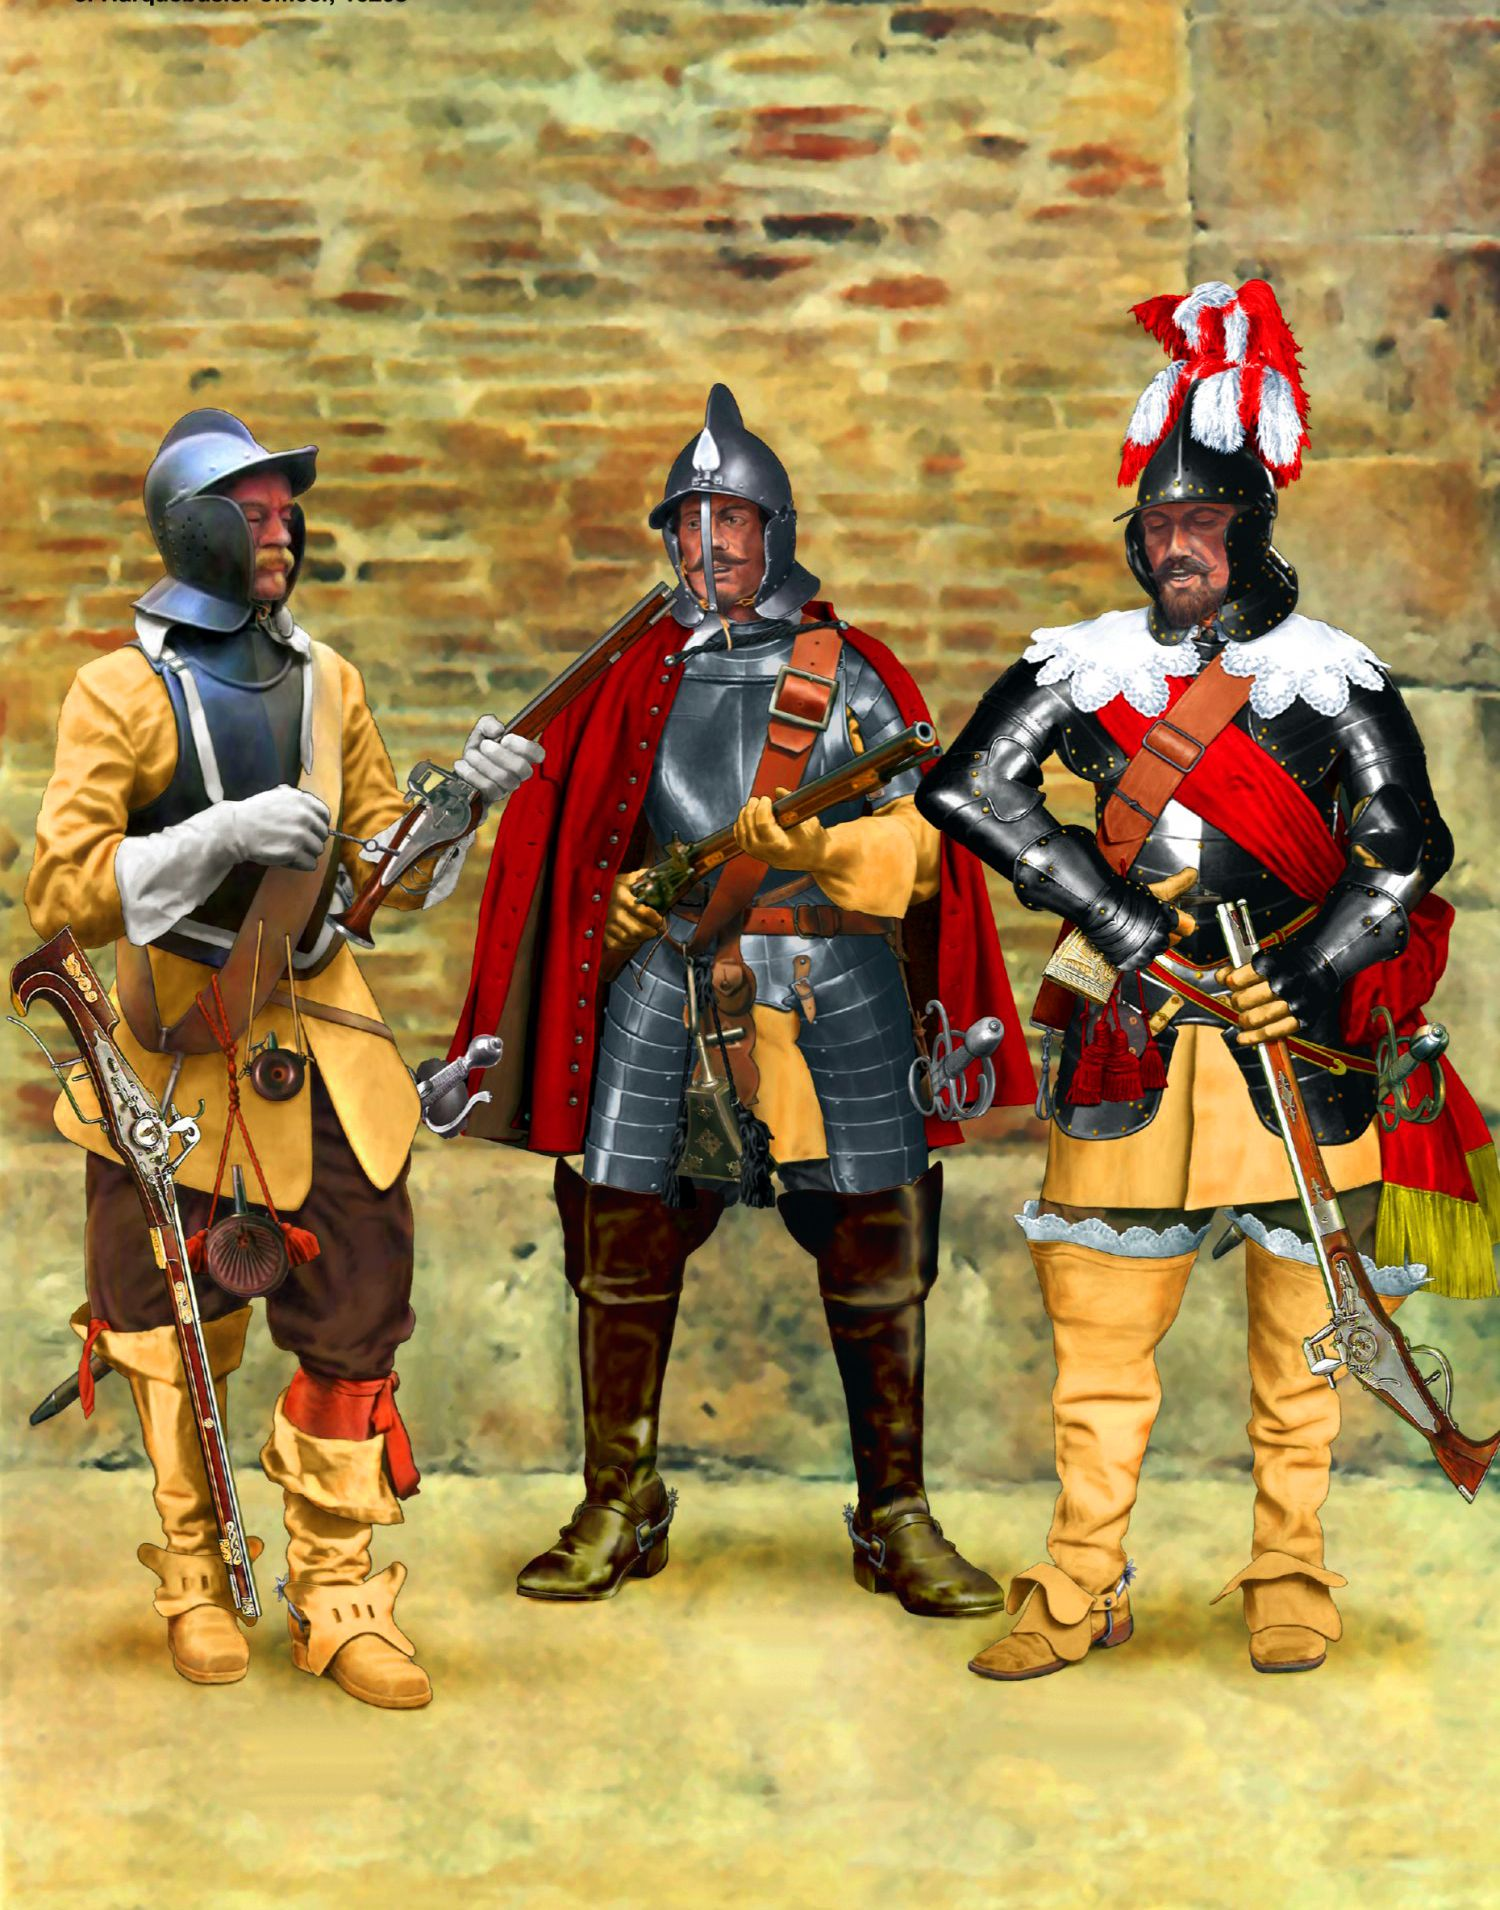 Harquebusier Officers Thirty Years War